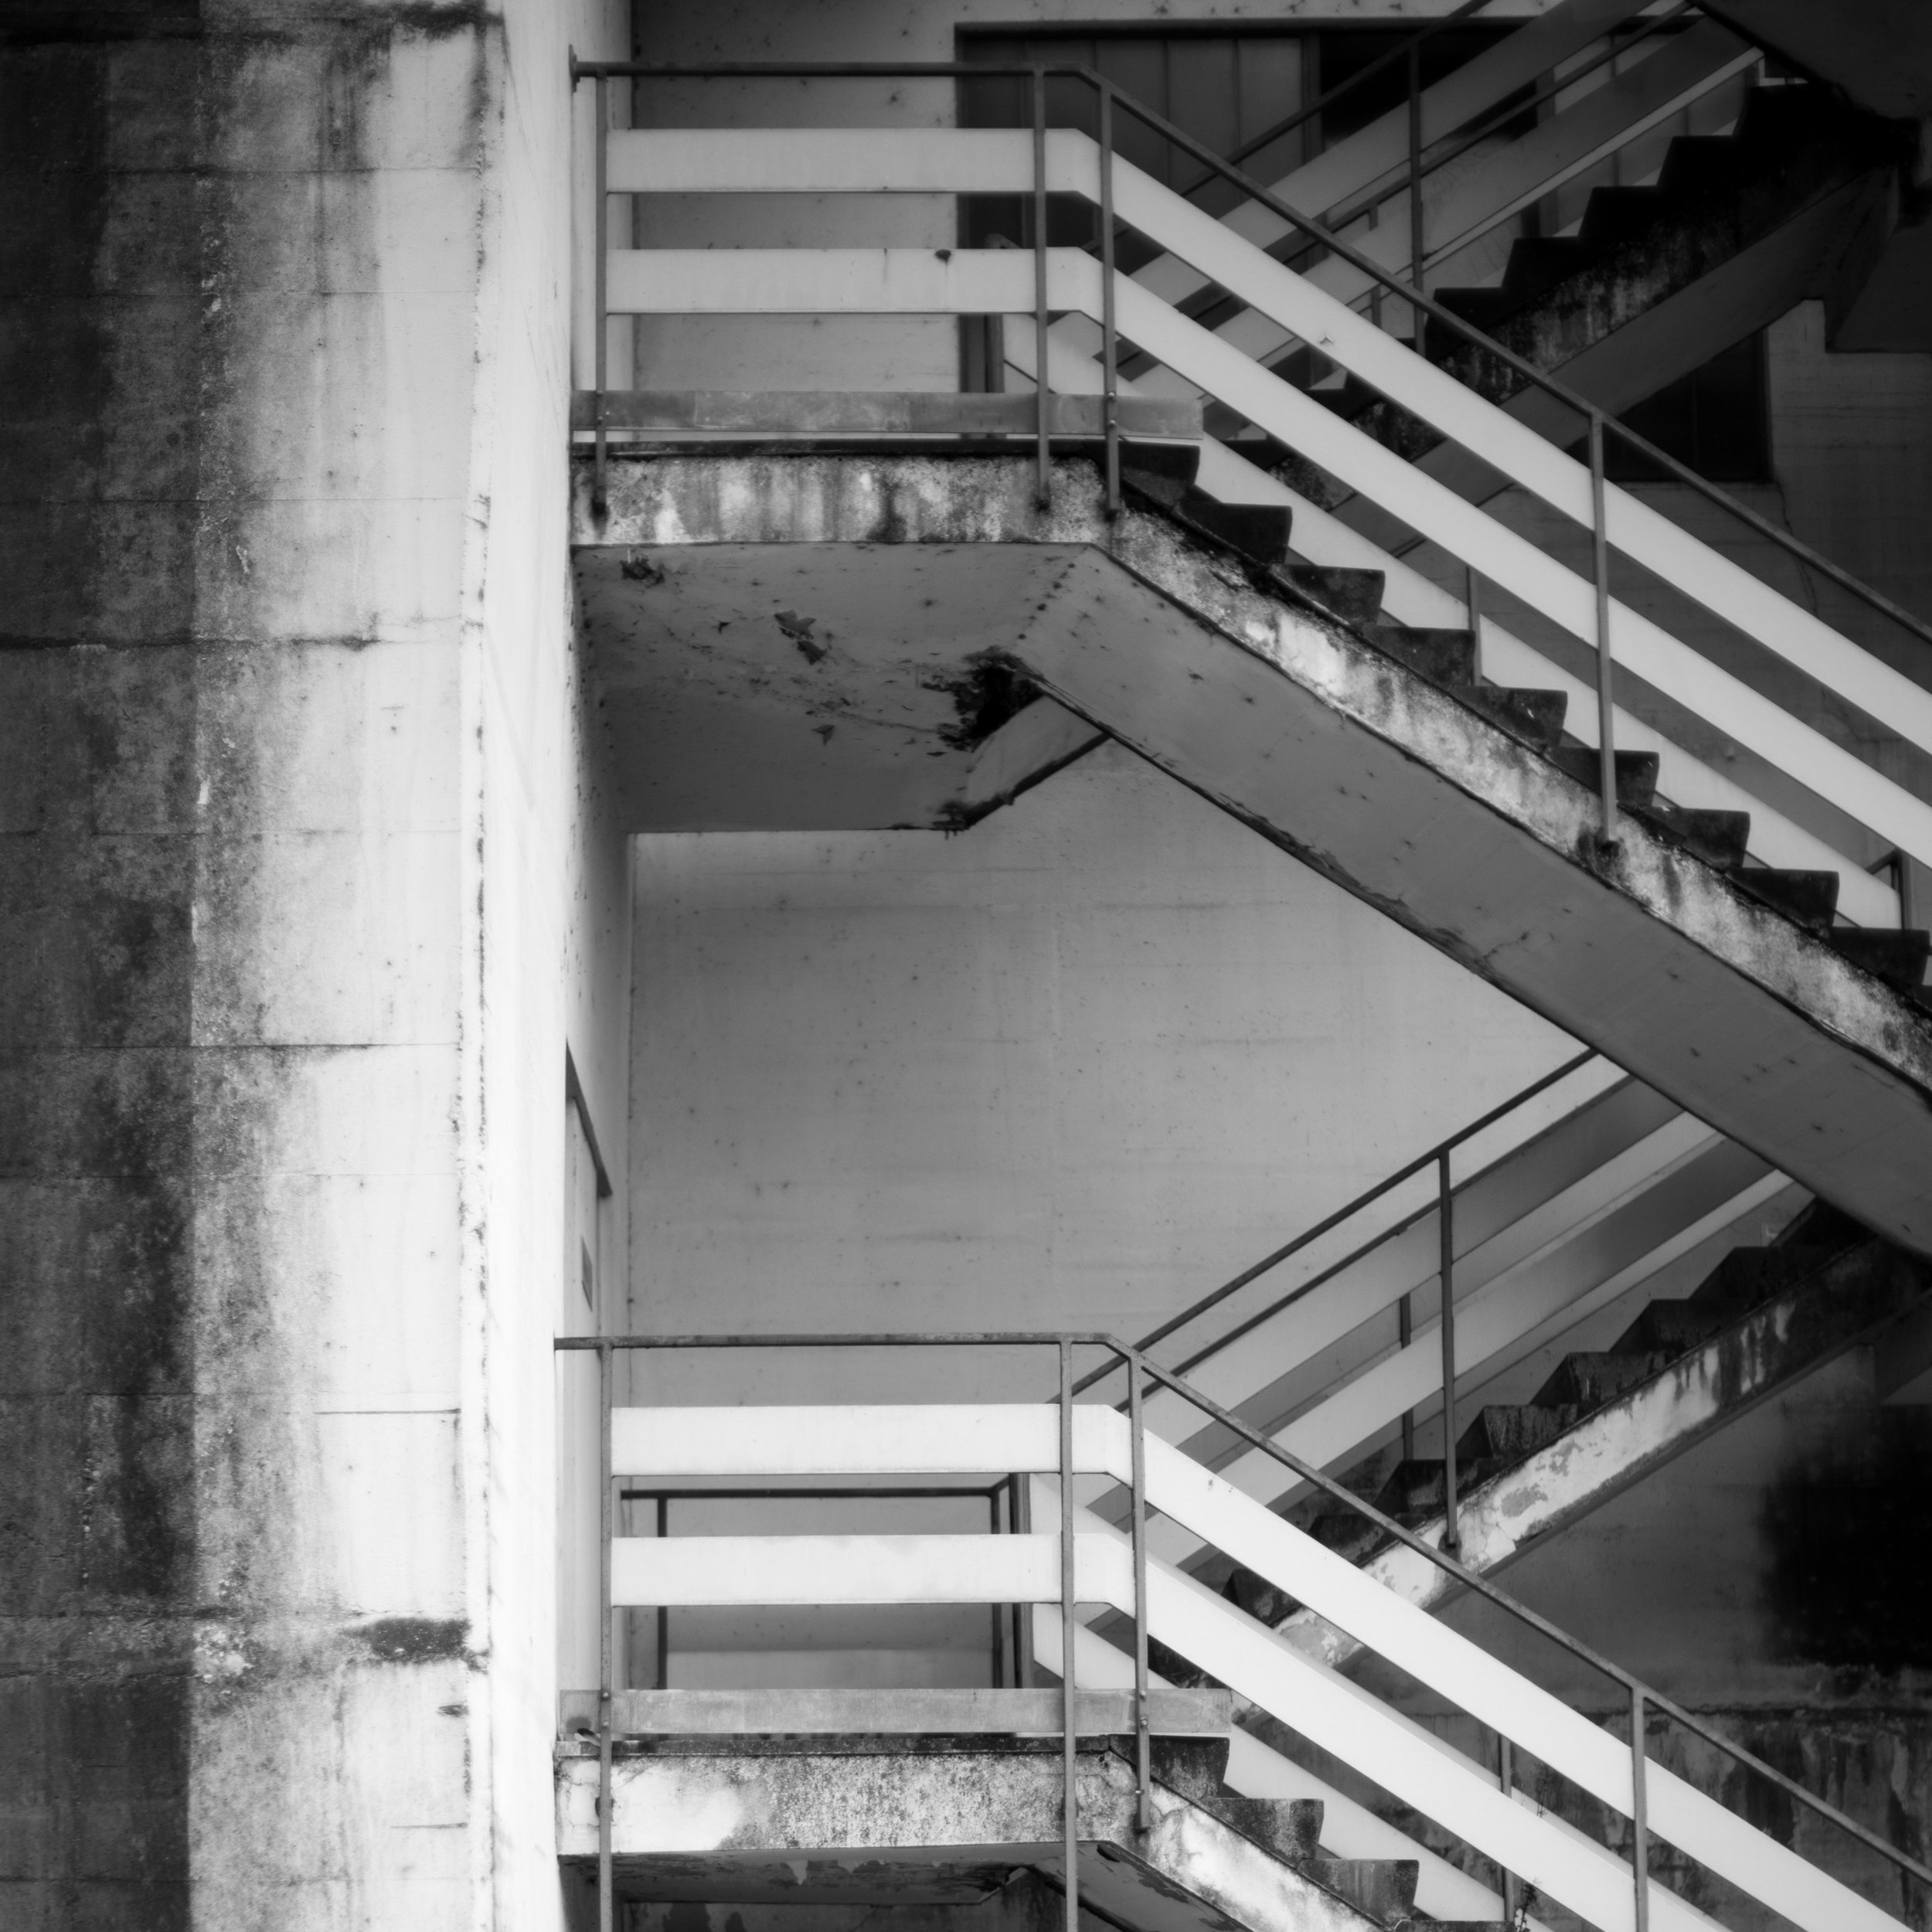 Staircase running along a hydro electric powerplant